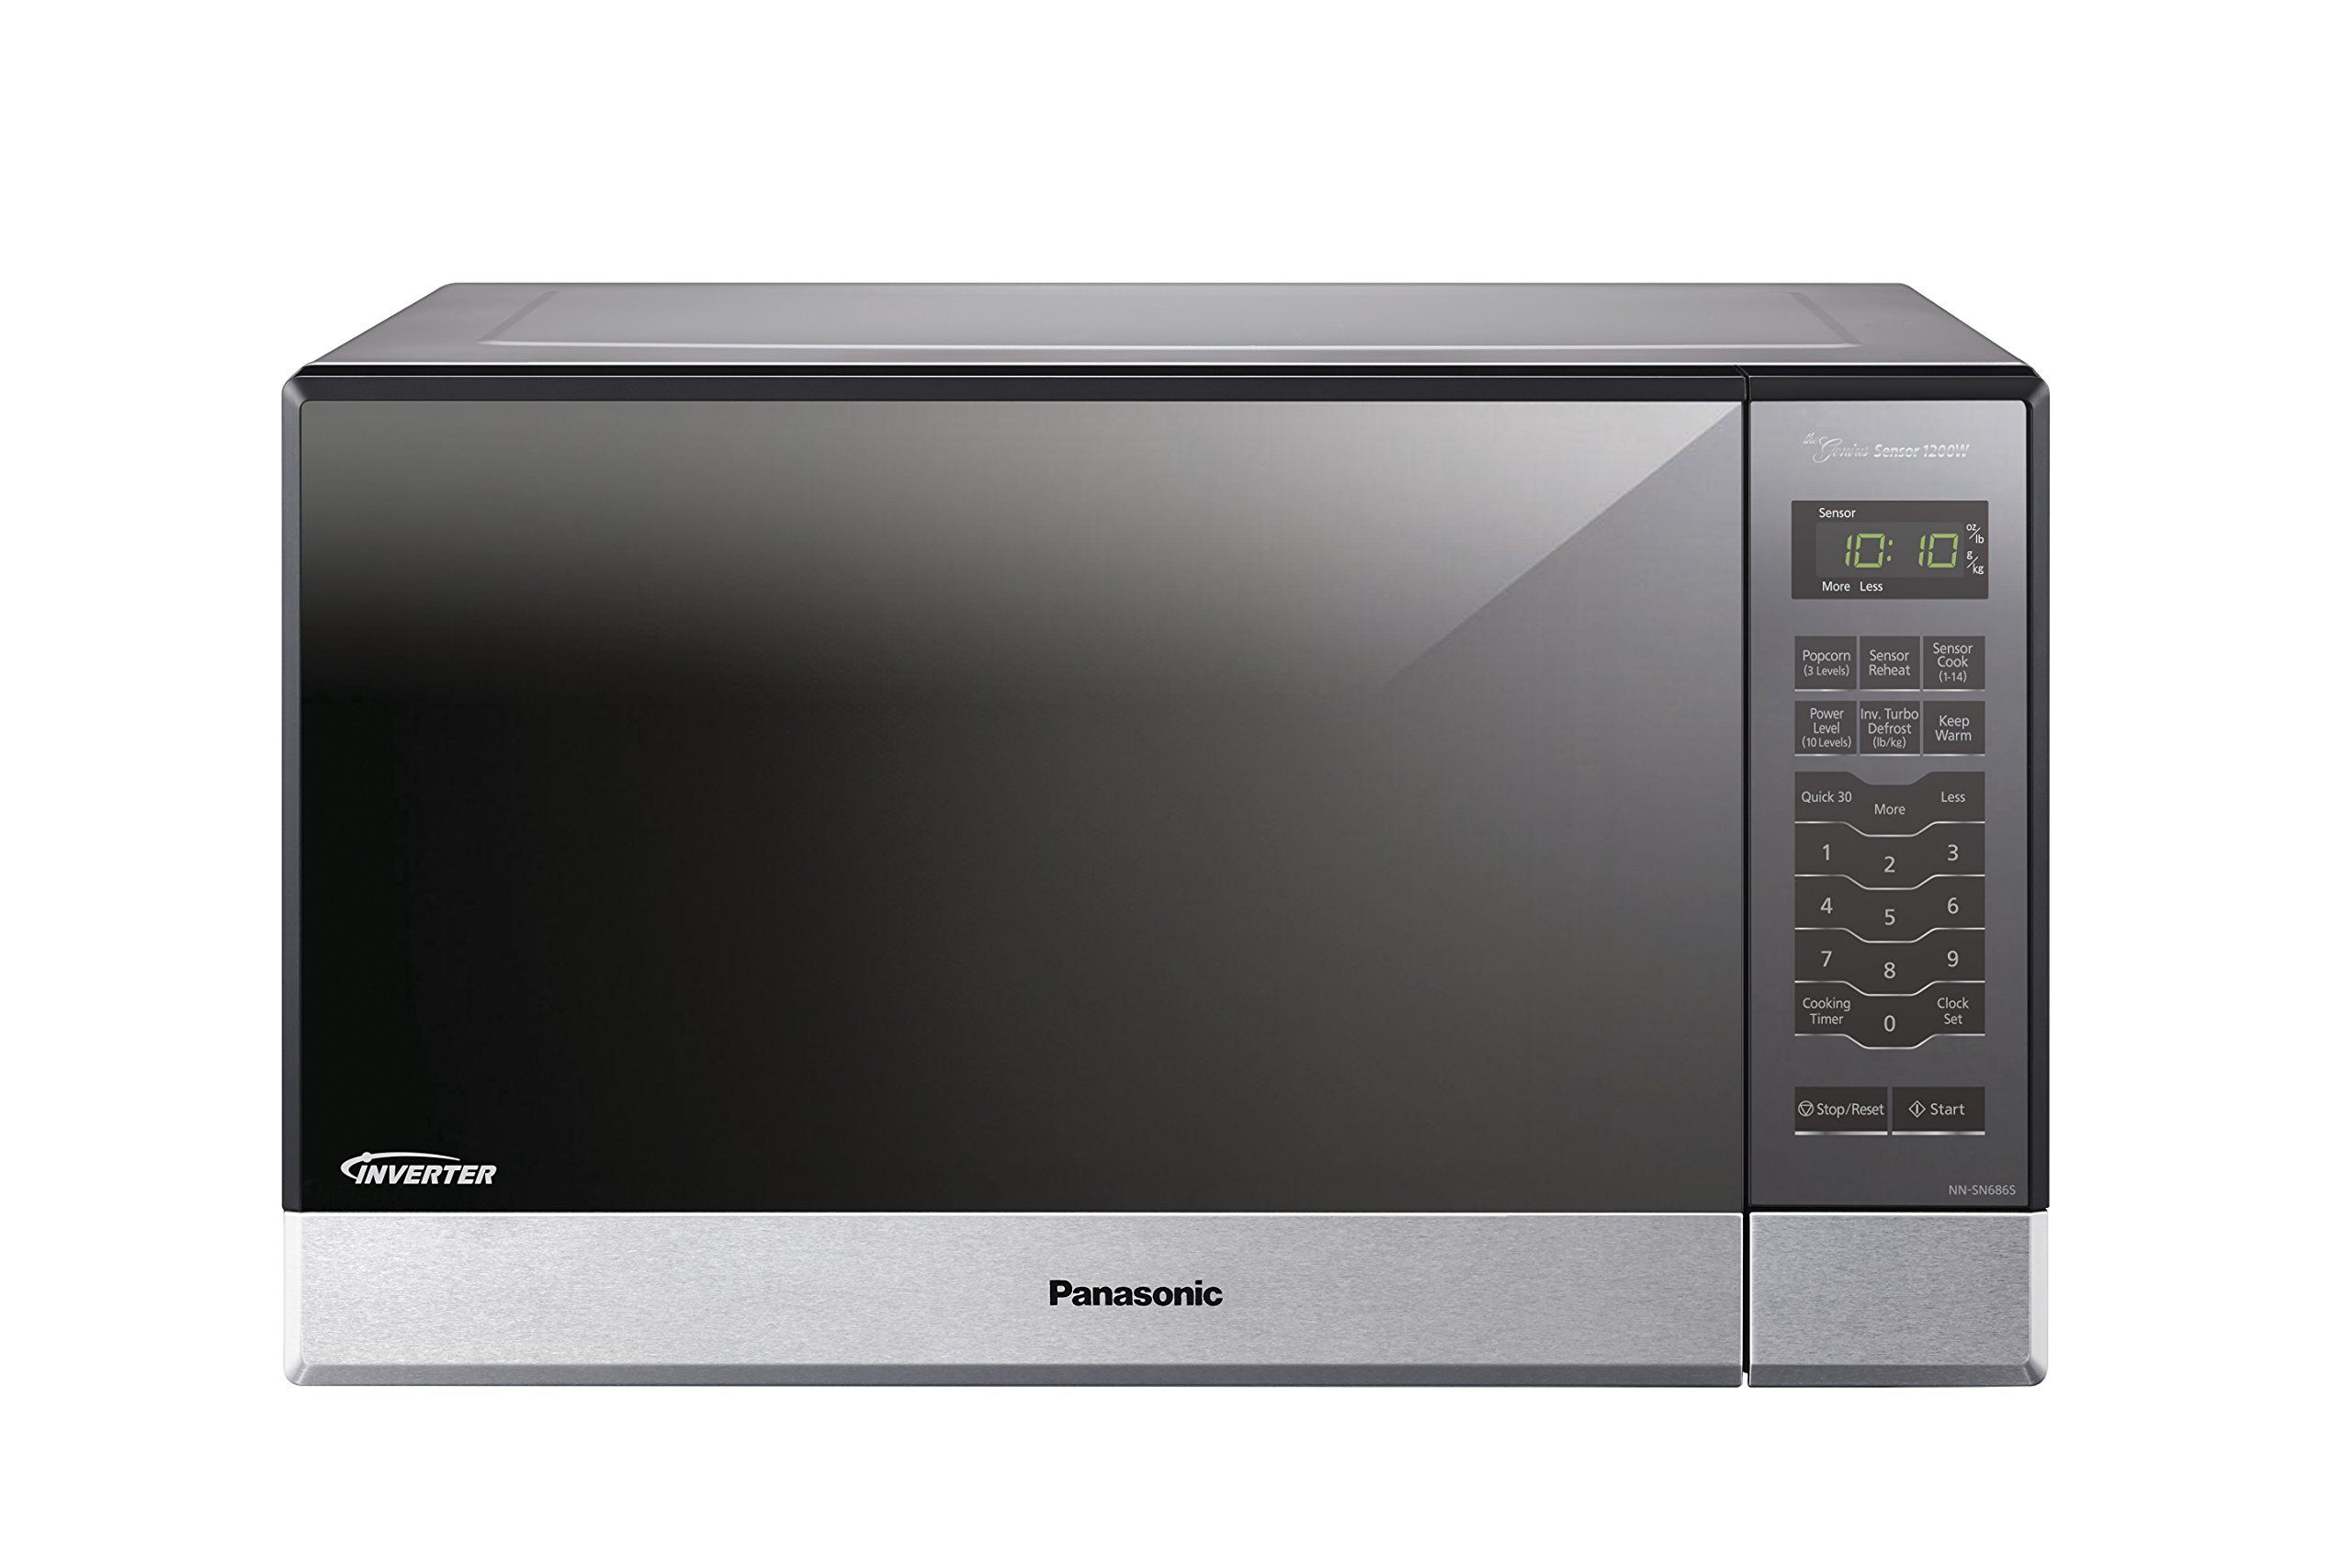 Panasonic Nnsn686s Countertop Builtin Microwave With Inverter Technology 1 2 Cu Ft 1200w Built In Microwave Panasonic Microwave Oven Built In Microwave Oven